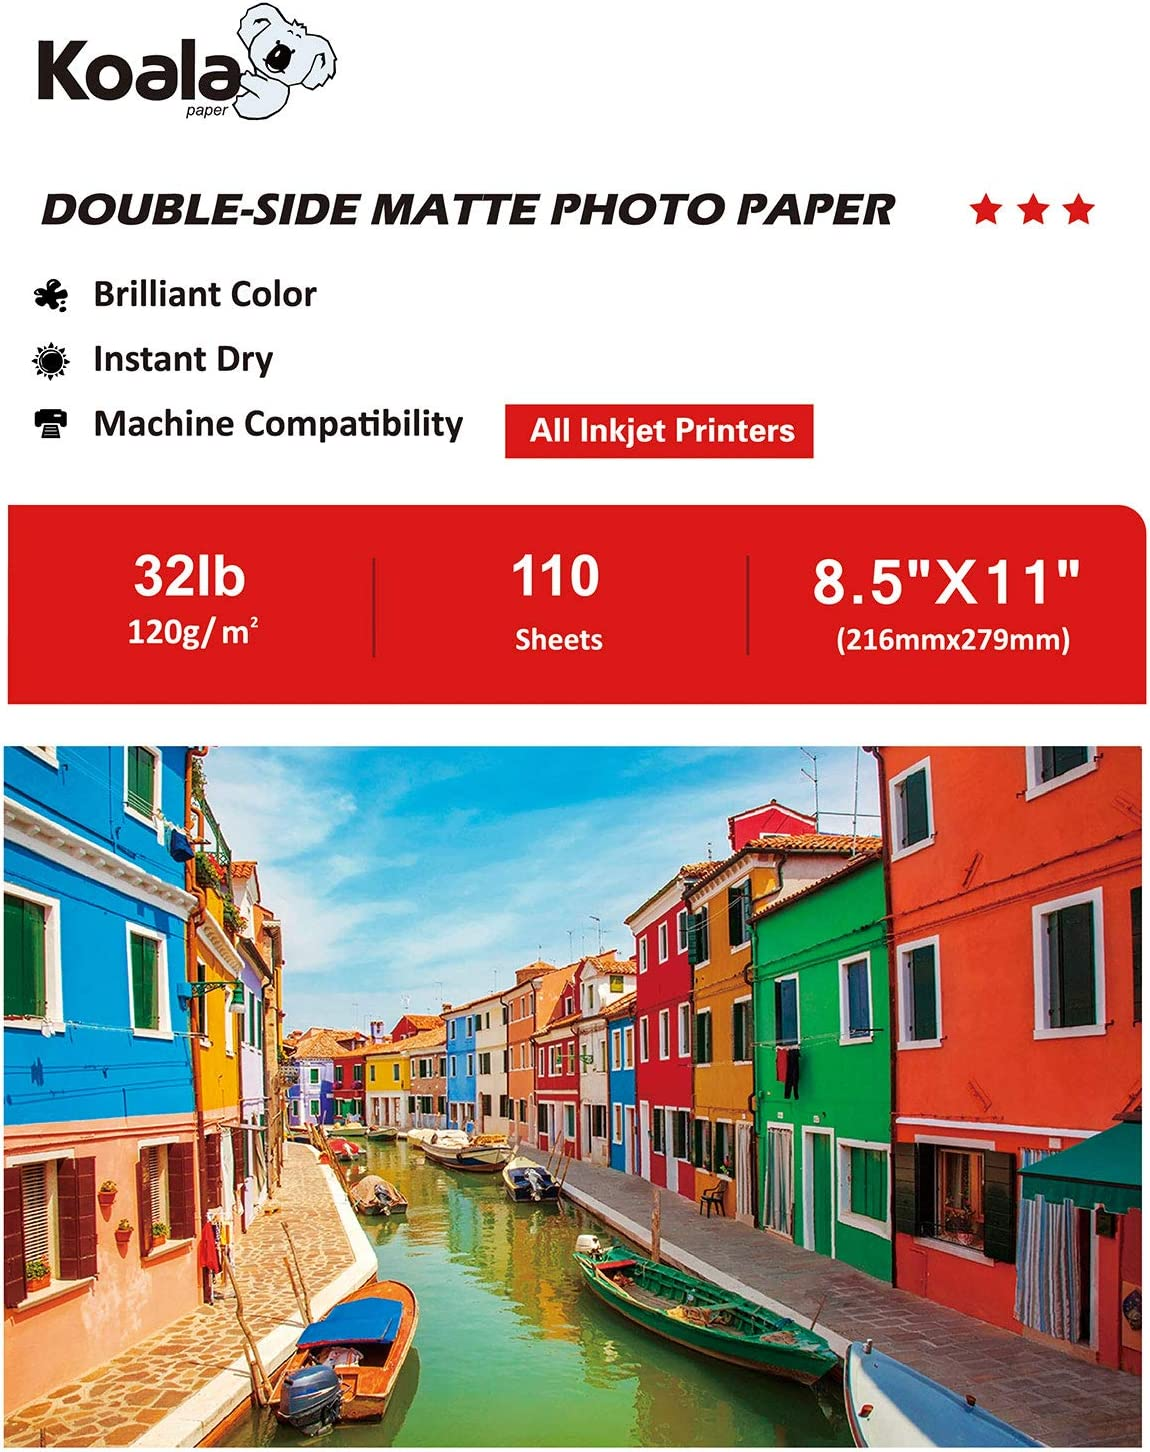 Koala Presentation Paper Double-Sided Matte for Printing Photo 8.5X11 Inches 110 Sheets Compatible with Inkjet Printer